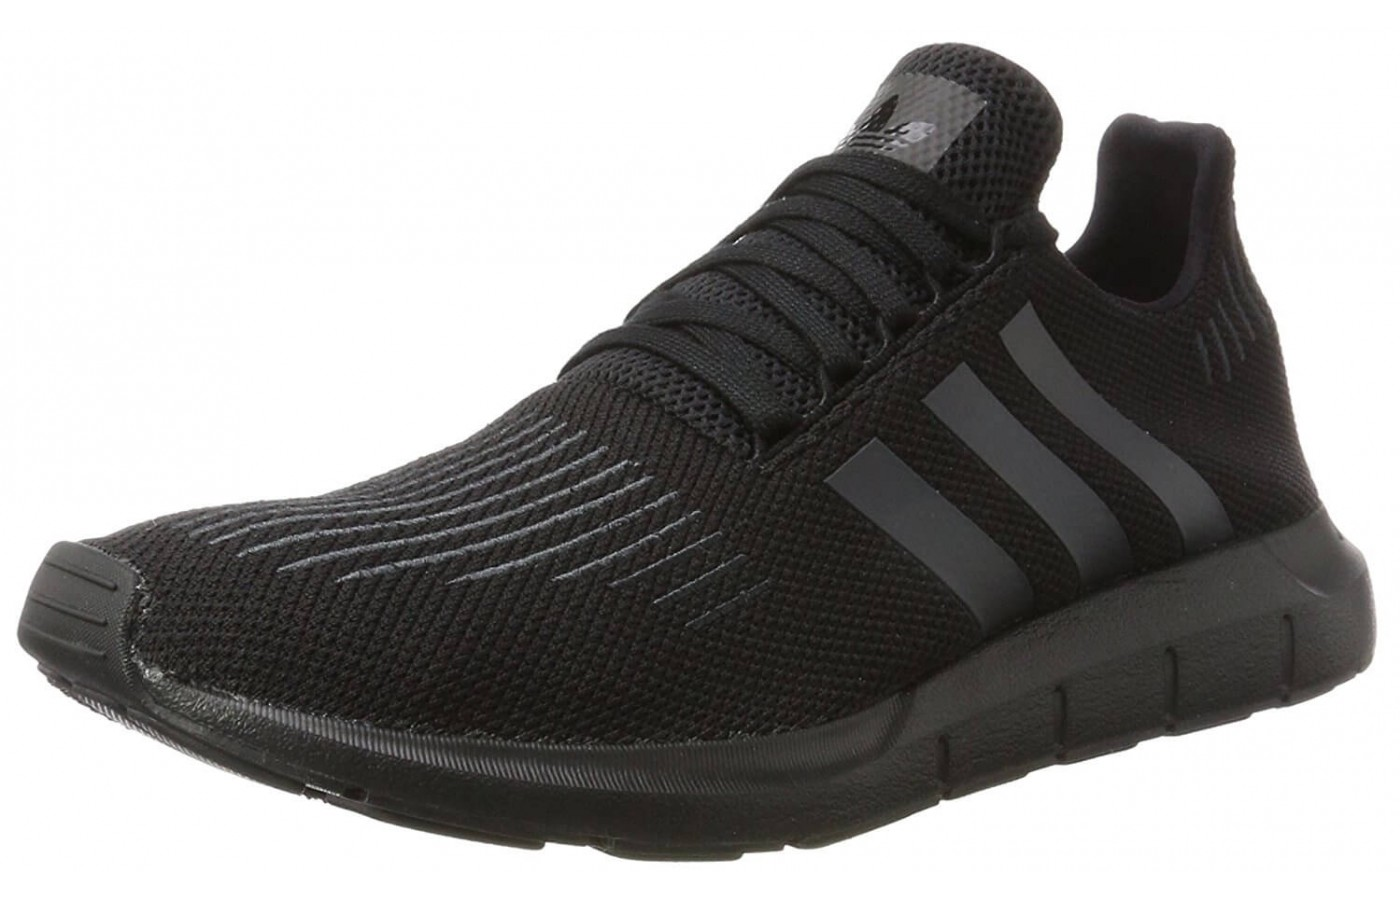 2187ce41a774 The Adidas Swiftrun Primeknit is a lightweight runner with a radical new  design philosophy.